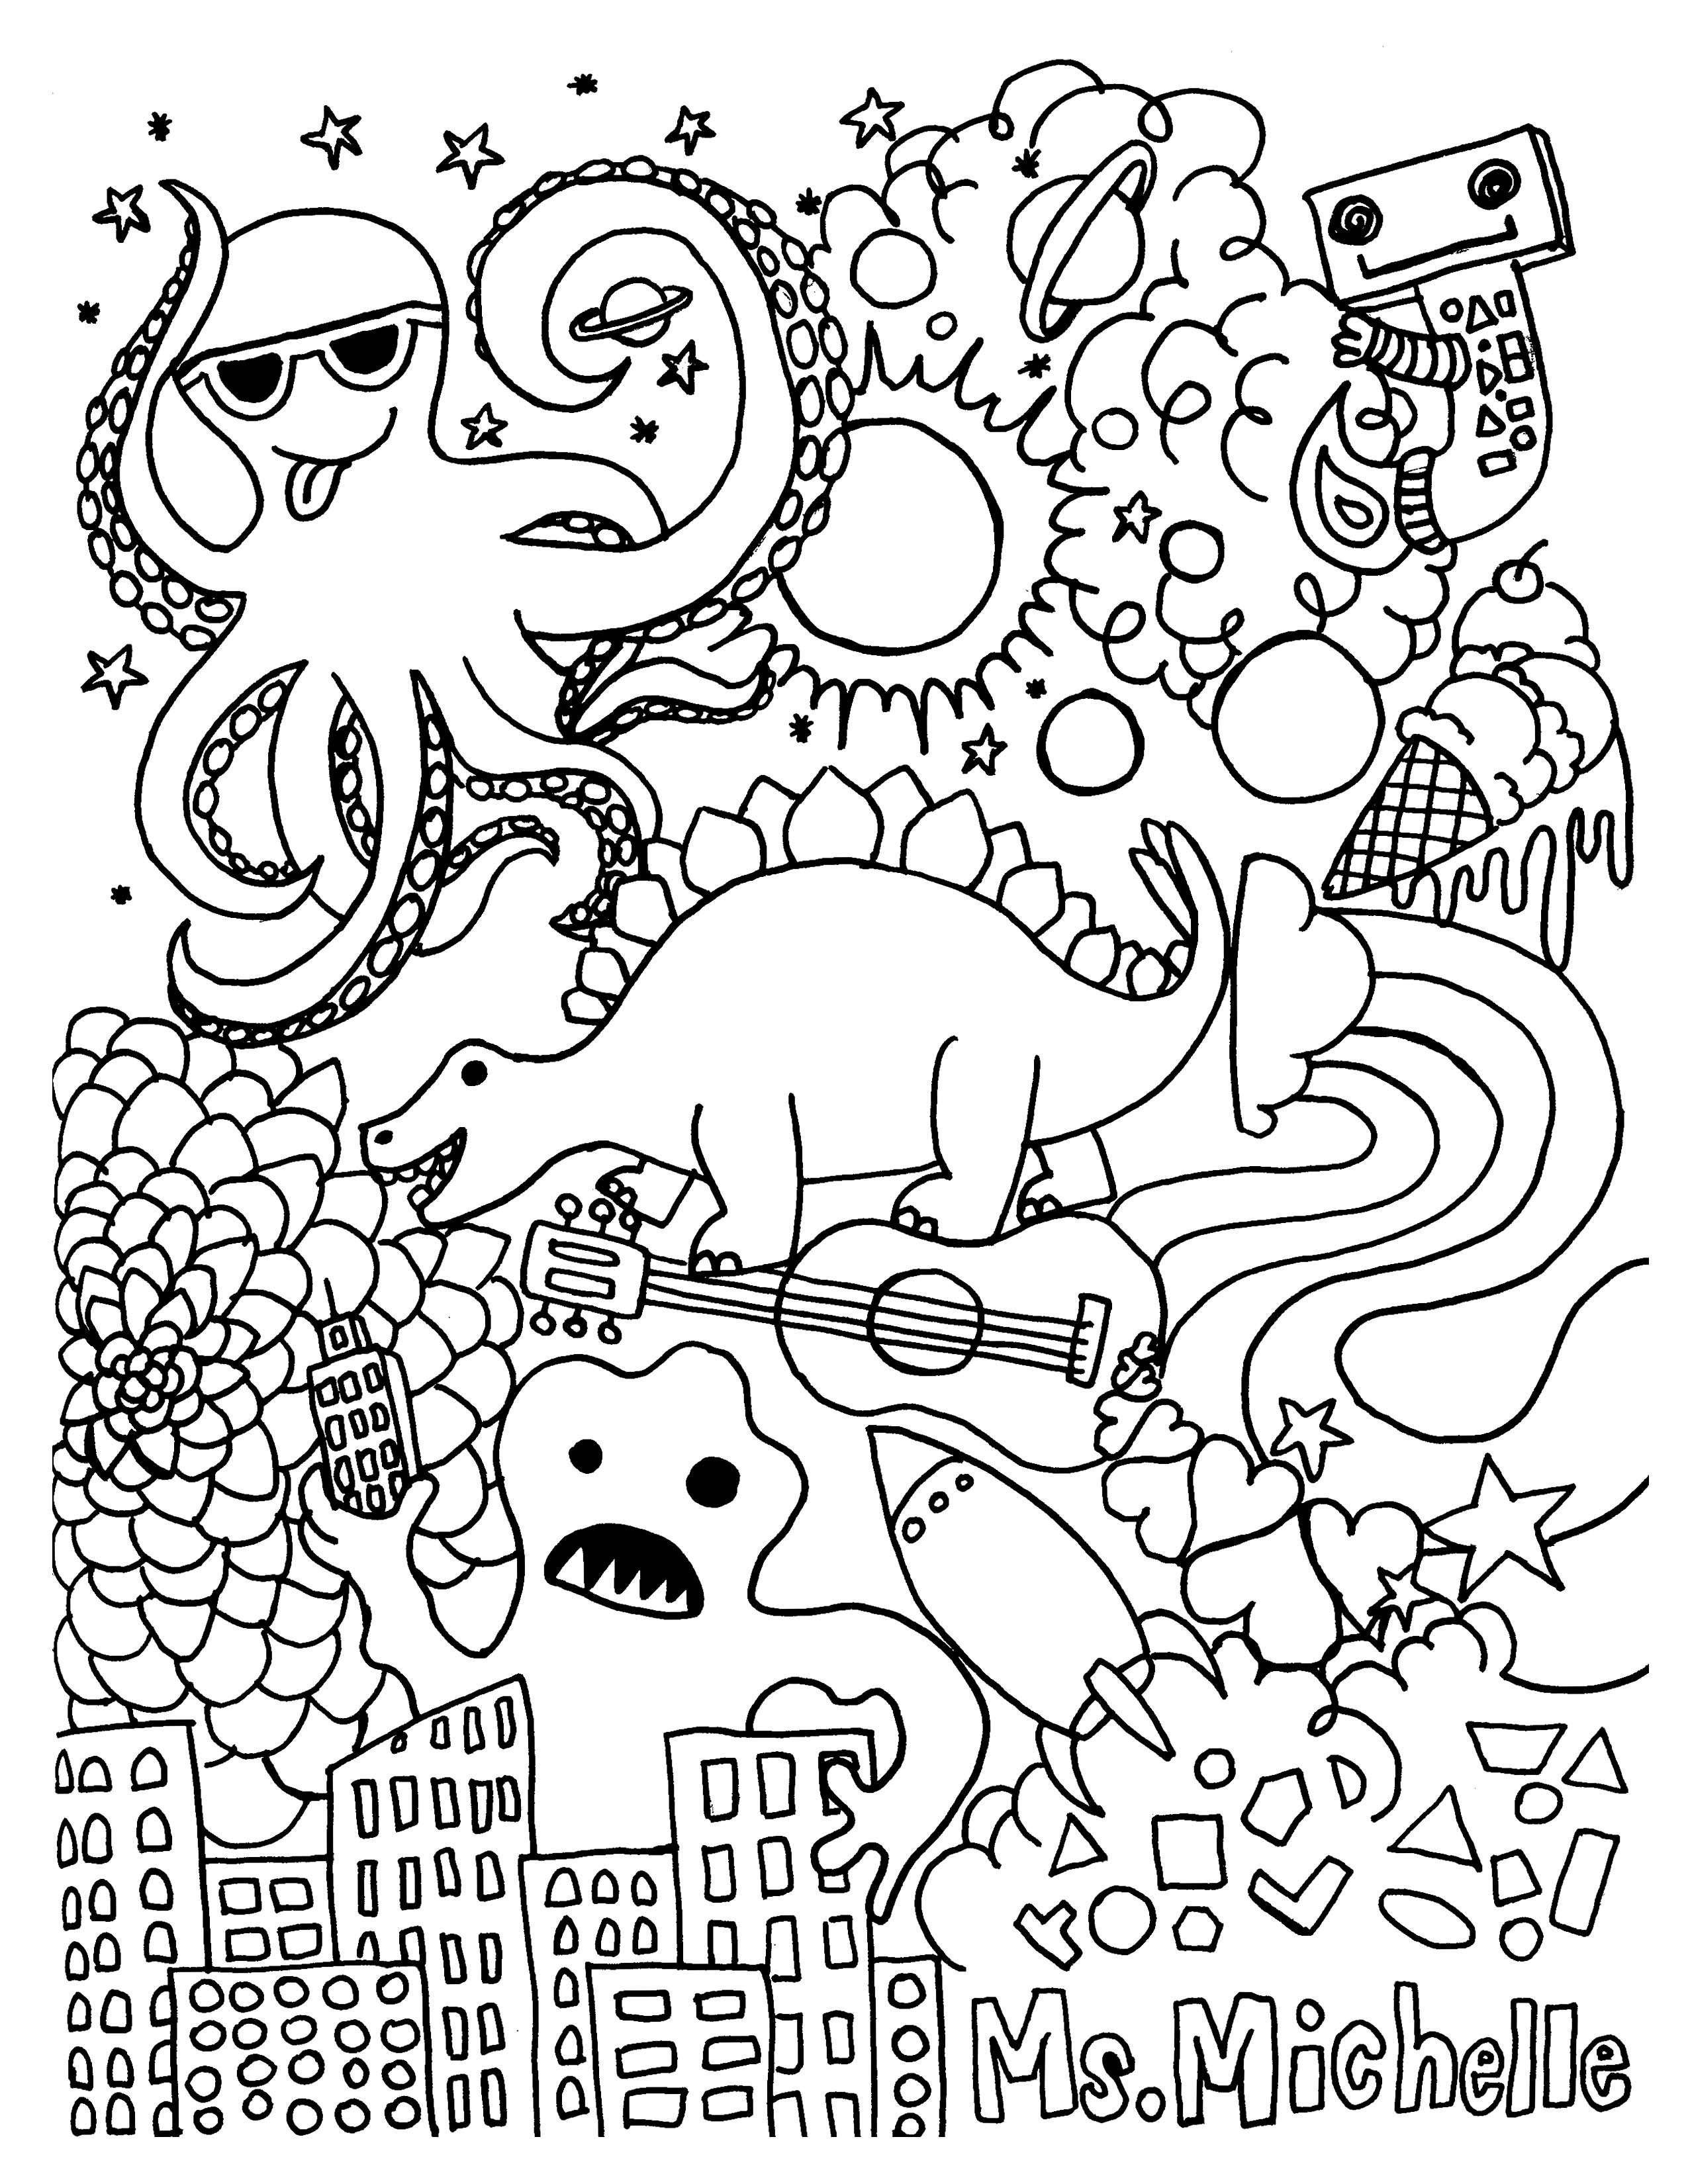 Santa Wish List Coloring Pages With Christmas Printable Page For Kids